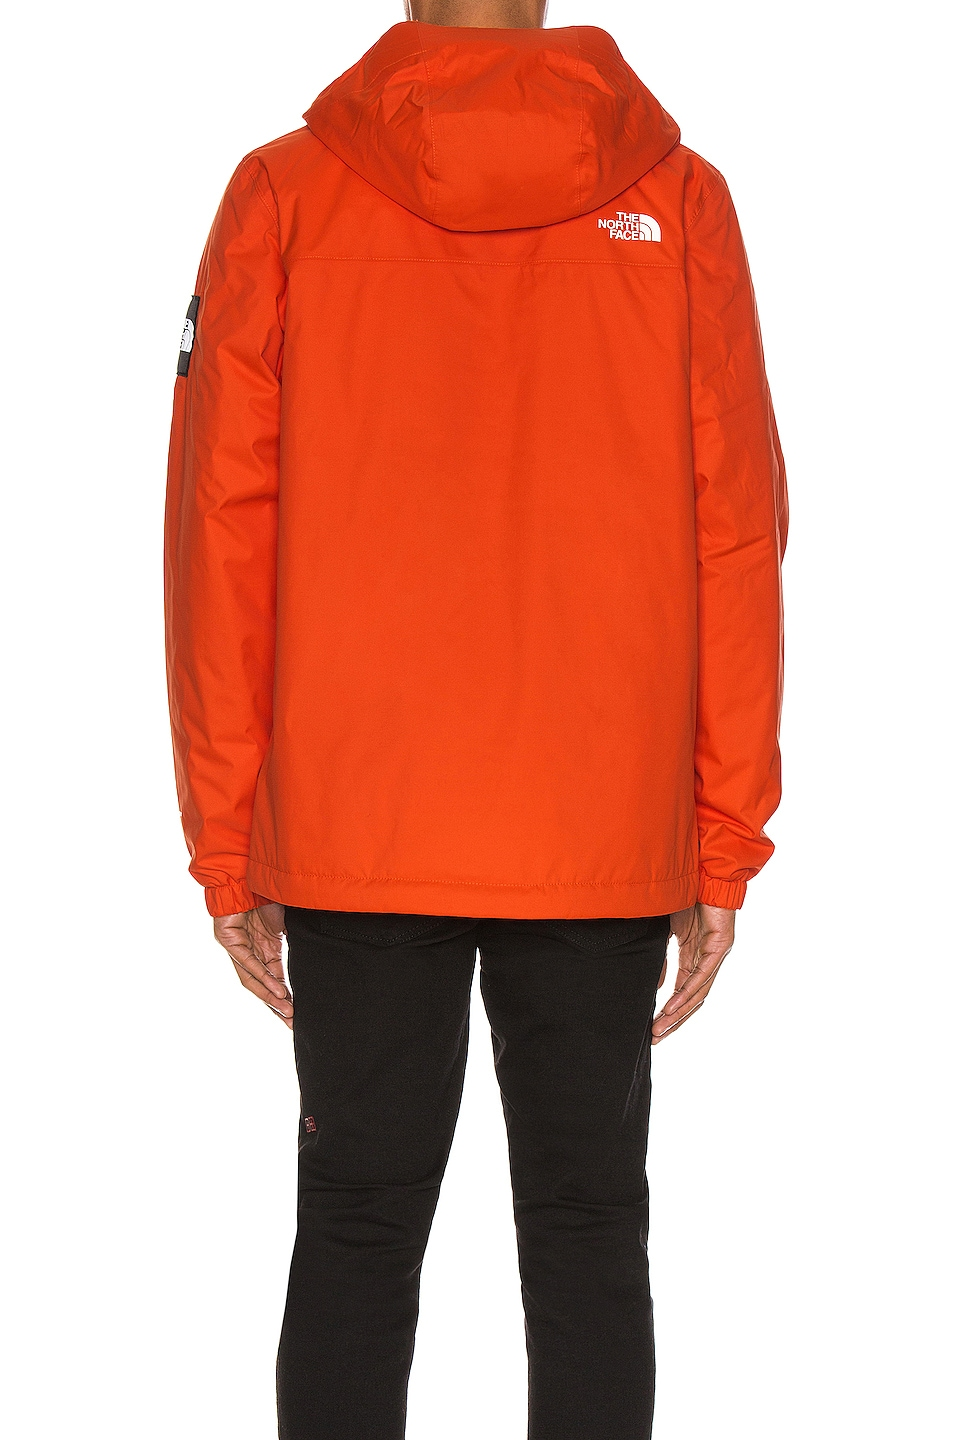 Image 5 of The North Face Black Box Ins Mountain Q Jacket in Tangerine Tango